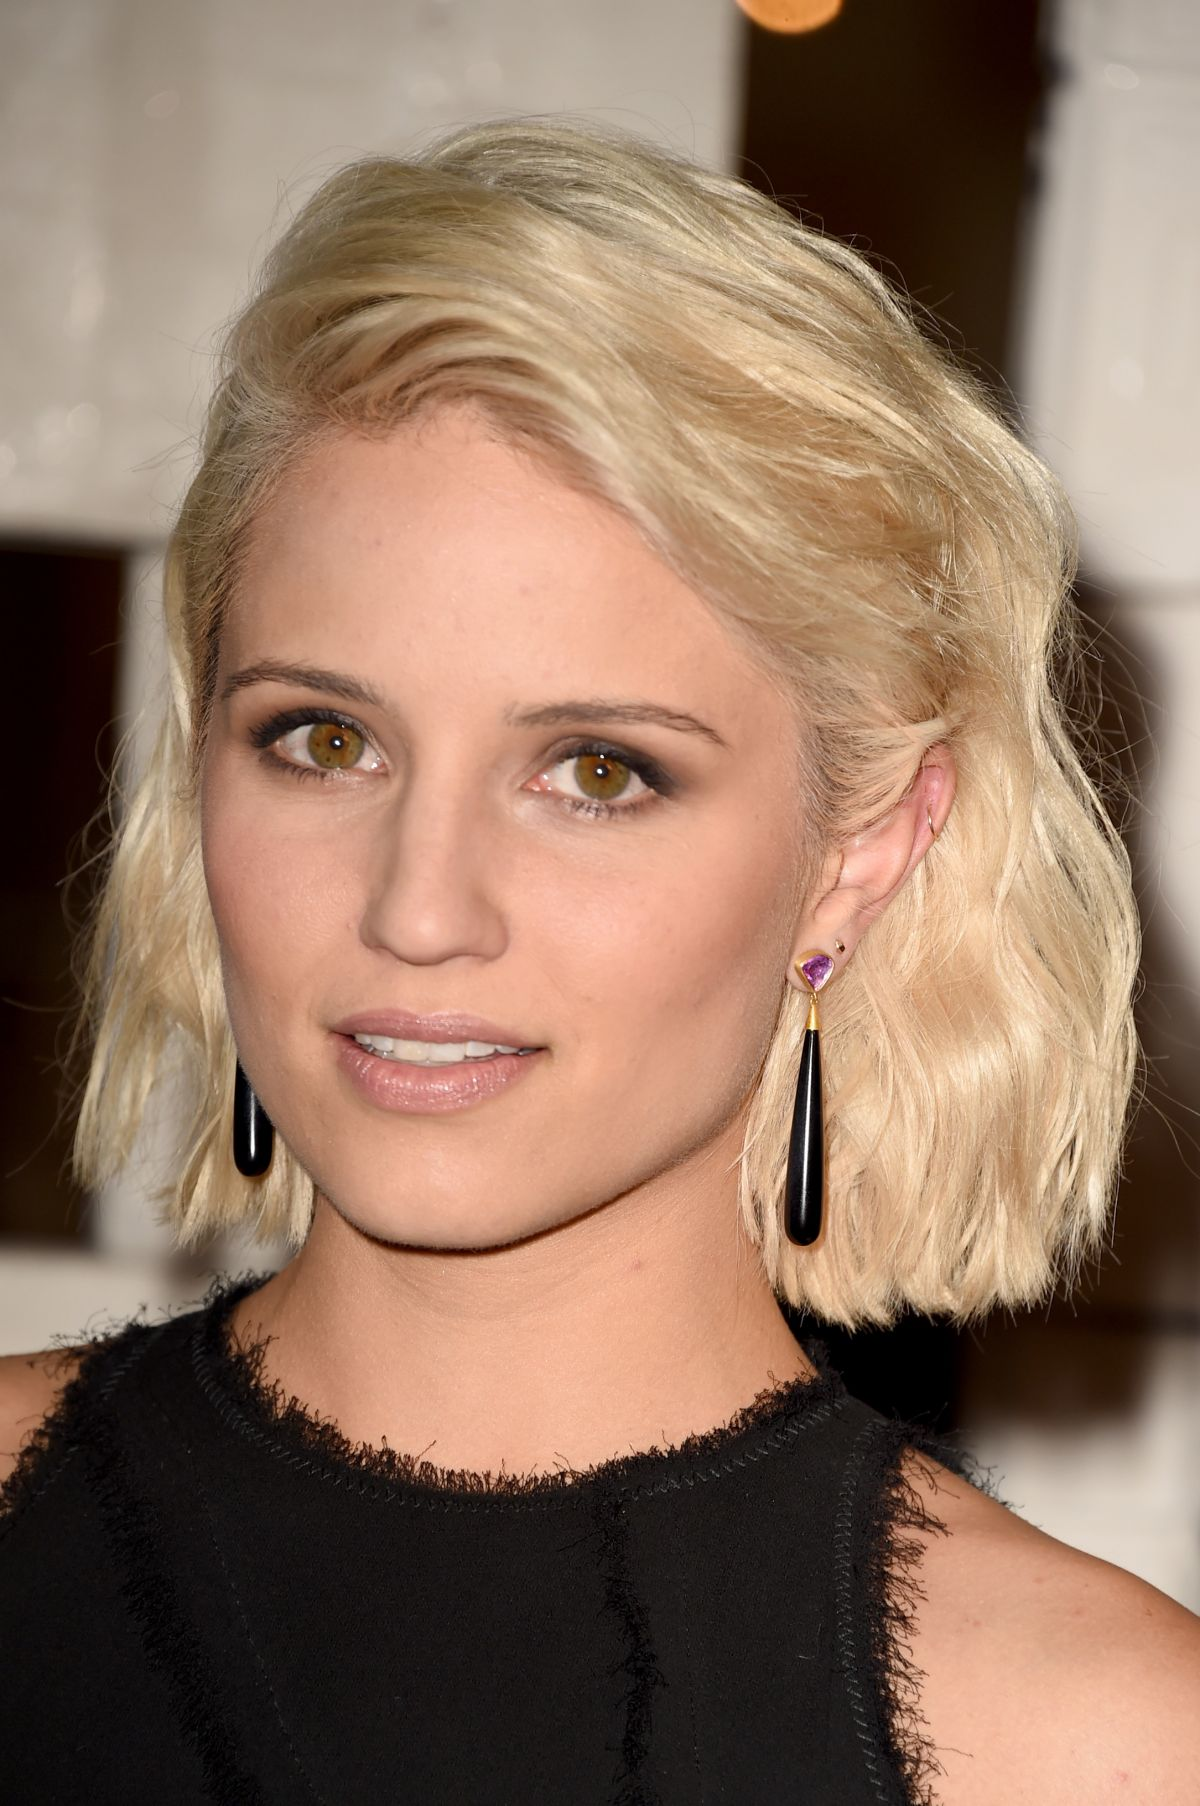 dianna-agron-at-hammer-museum-s-gala-in-the-garden-in-westwood_3